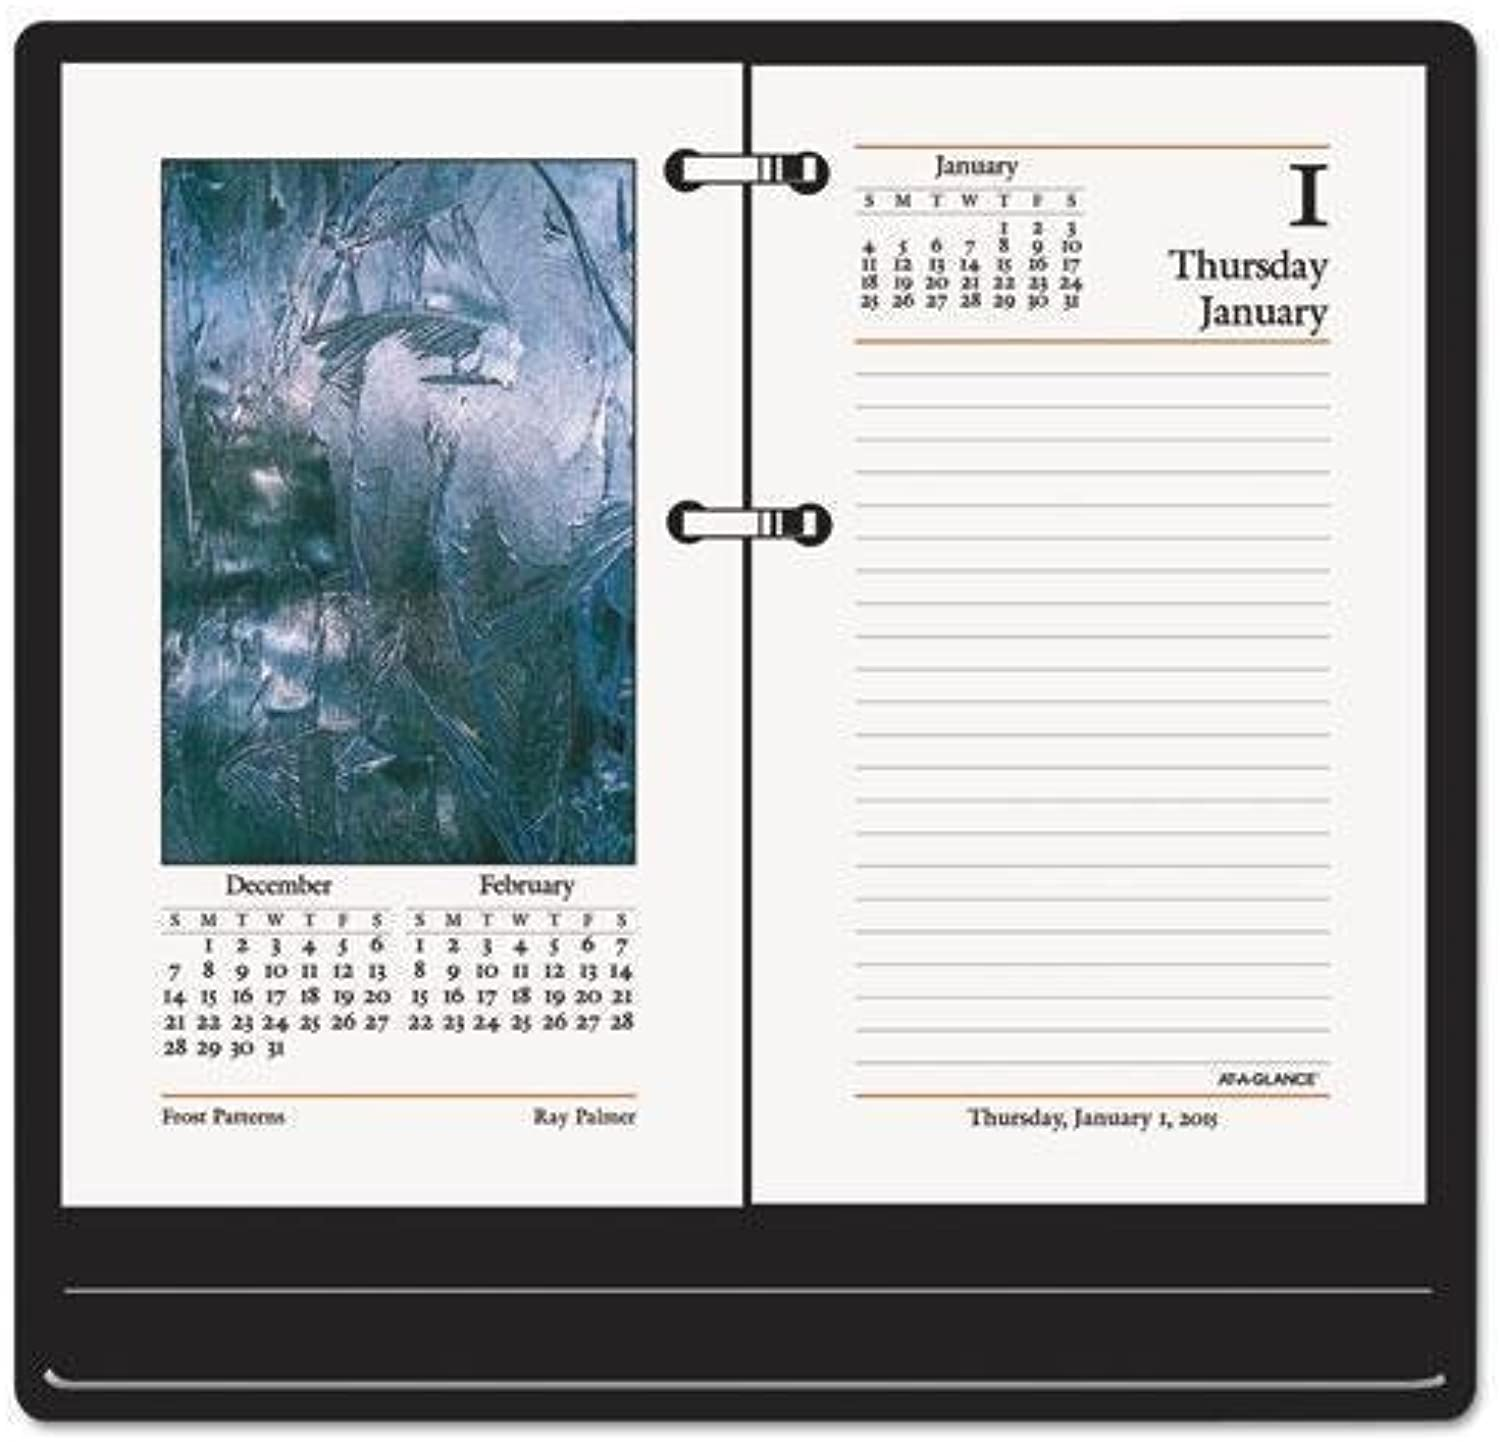 AAGE41750 - - - At-A-Glance Photographic Desk Calendar Refill by At-A-Glance B018REI0KC | Internationale Wahl